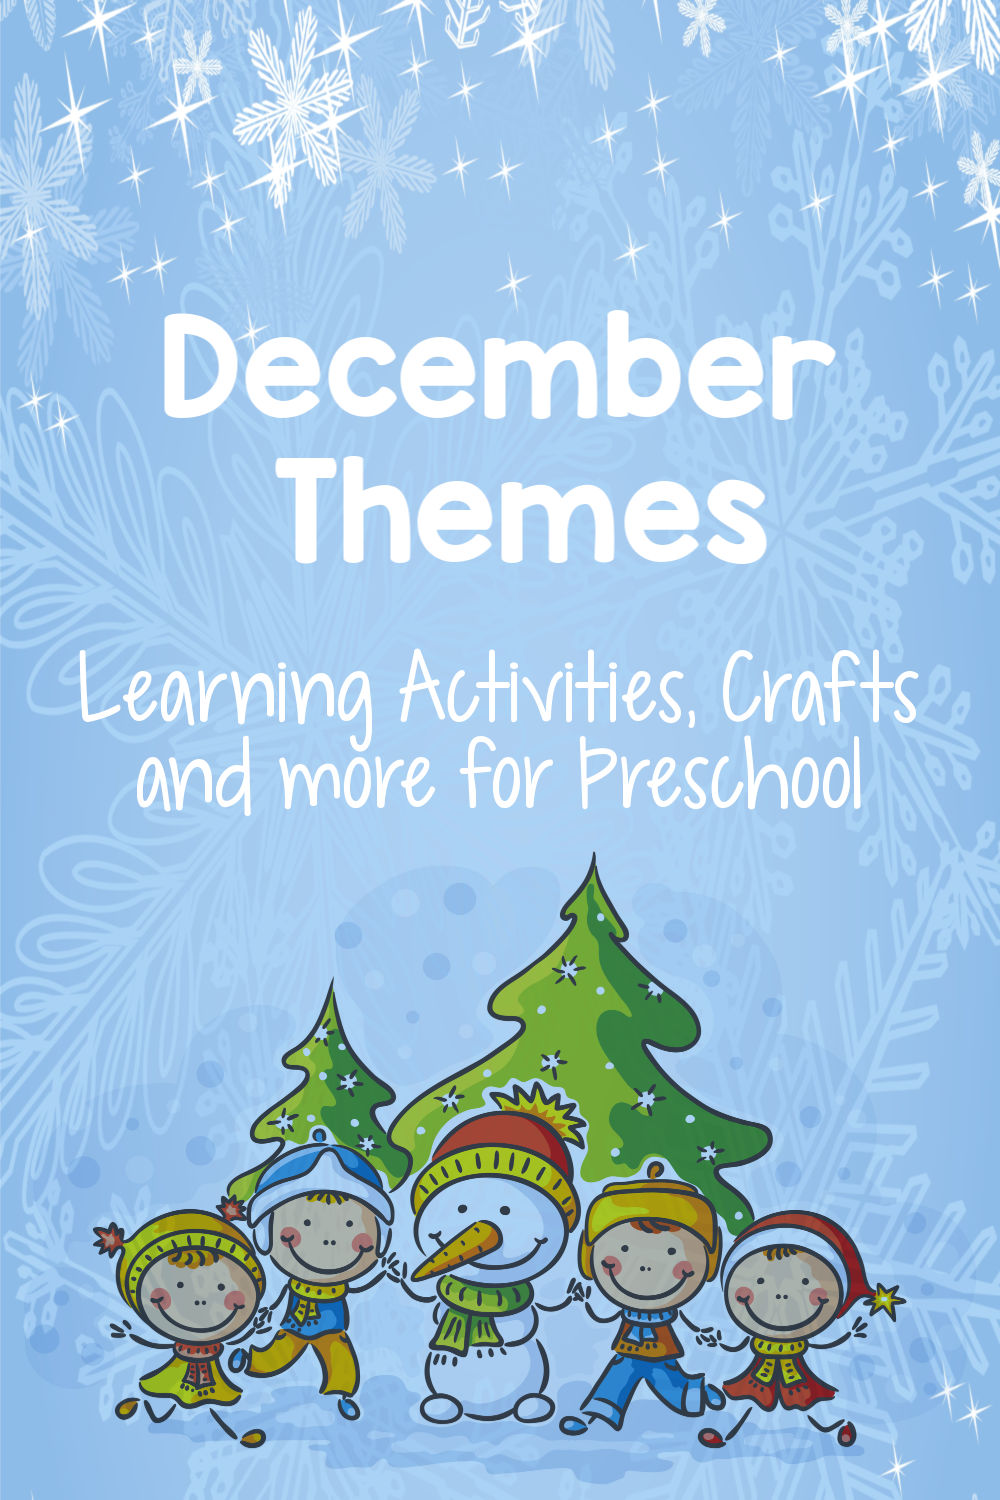 Everything you need for preschool this December! Themes including hands-on activities, crafts, ideas, lesson plans, and more! #preschool #preschoolthemes #december #decembertheme #crafts #preschoolart #preschoolactivities